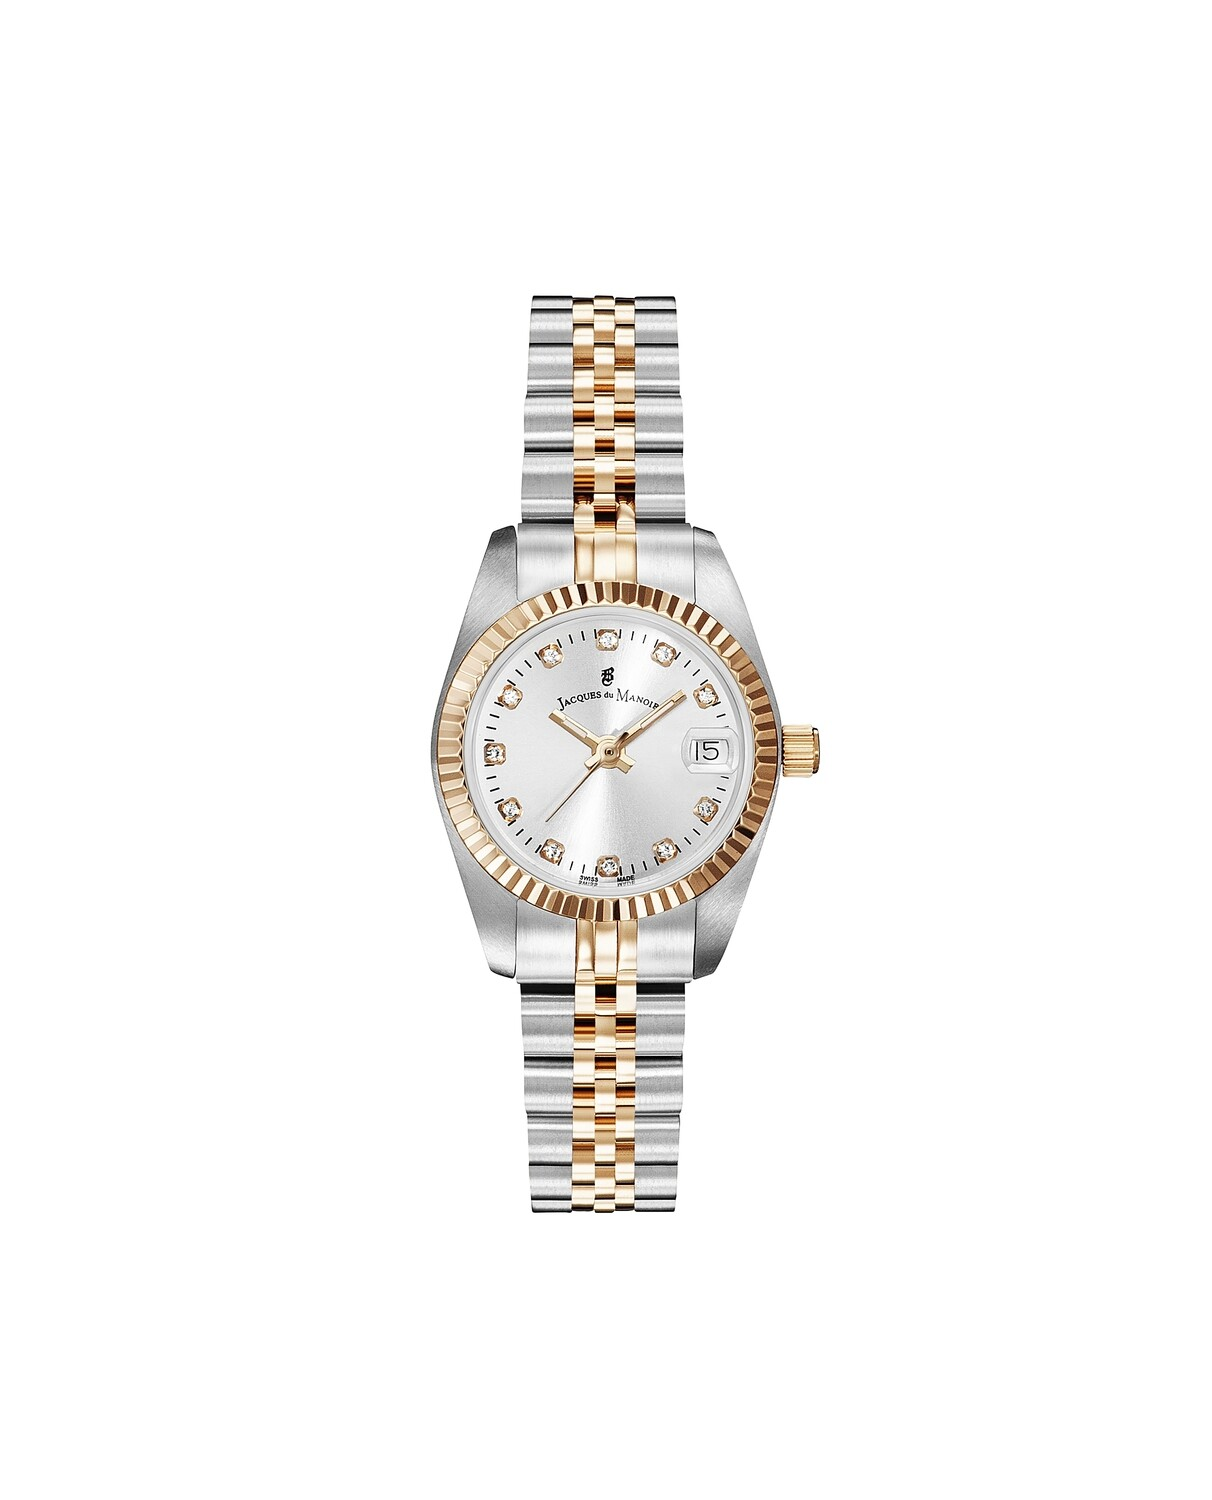 NROP.24] Inspiration Inspiration SS IPRosegold Two Tone case, WHITE Dial, SS IPRosegold Two Tone Bracelet, 26.0 mm